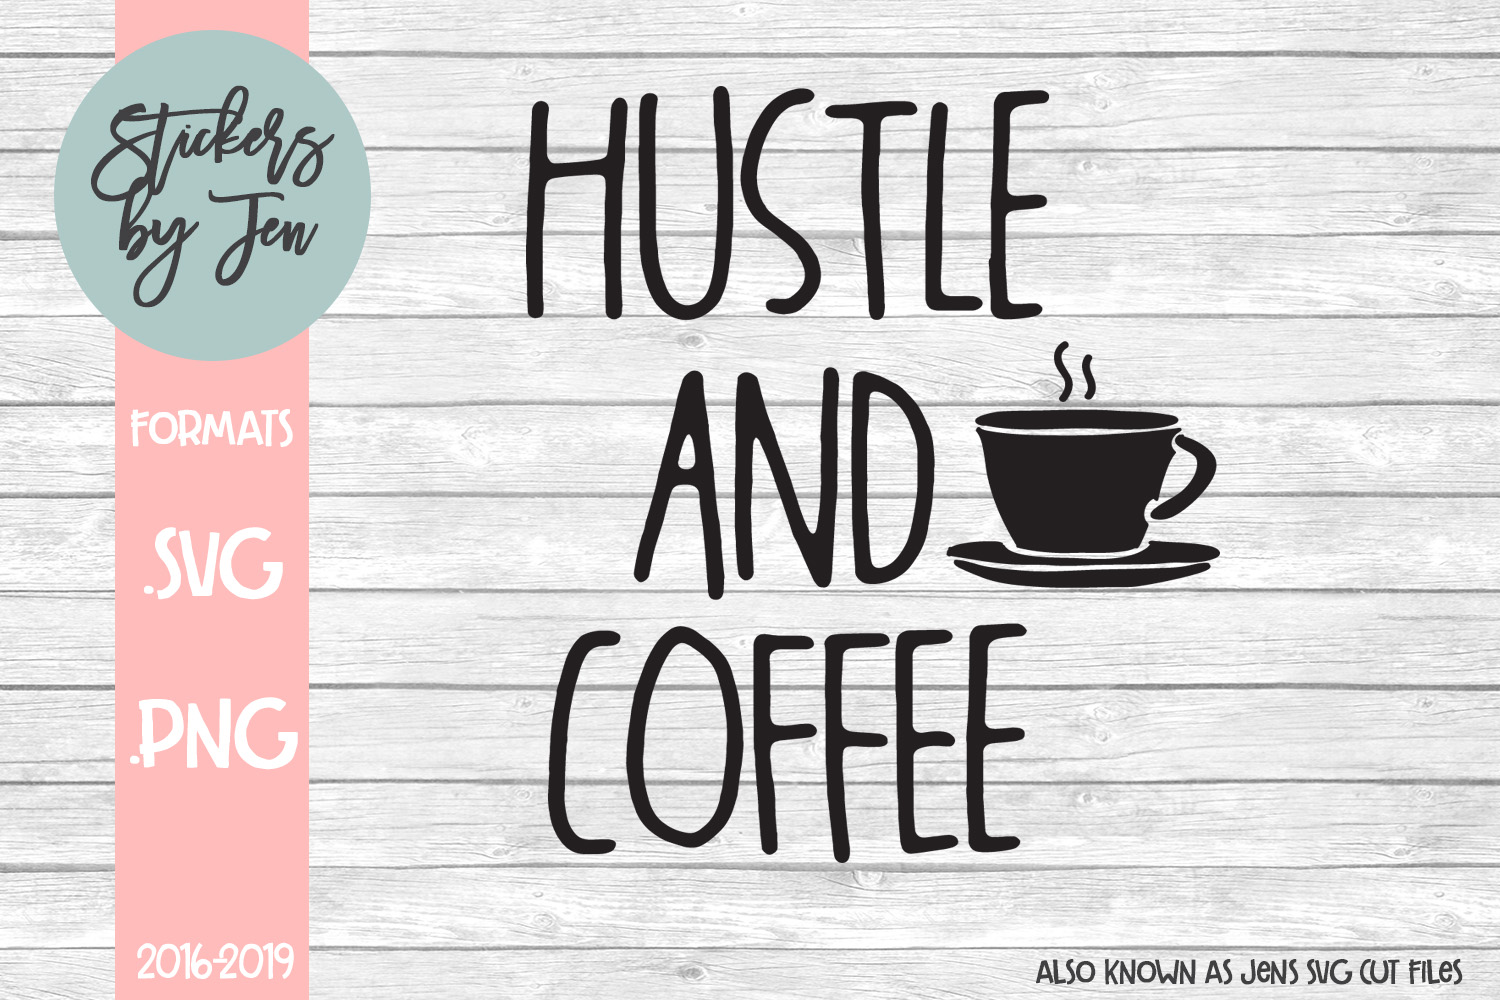 Download Free Hustle And Coffee Svg Graphic By Stickers By Jennifer Creative for Cricut Explore, Silhouette and other cutting machines.